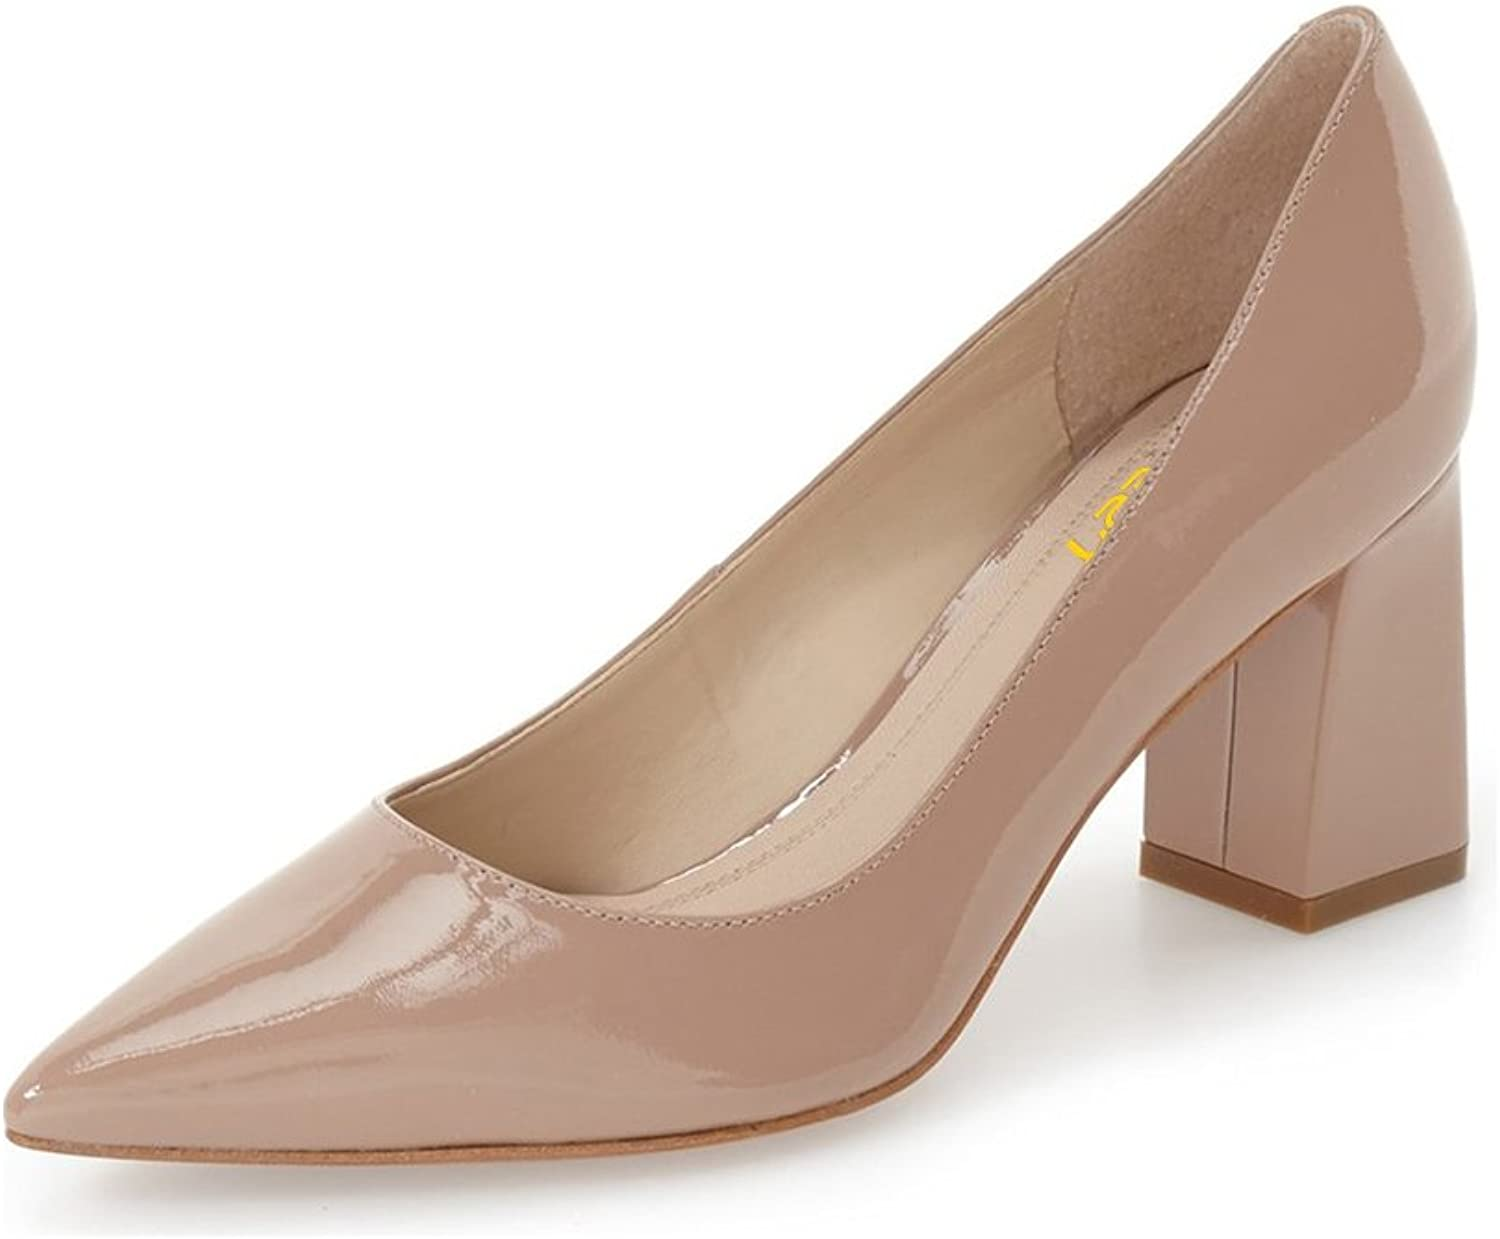 FSJ Comfortable Formal Pumps Patent Leather Pointed Toe Thoes Chunky Heels for Women Size 4-15 US